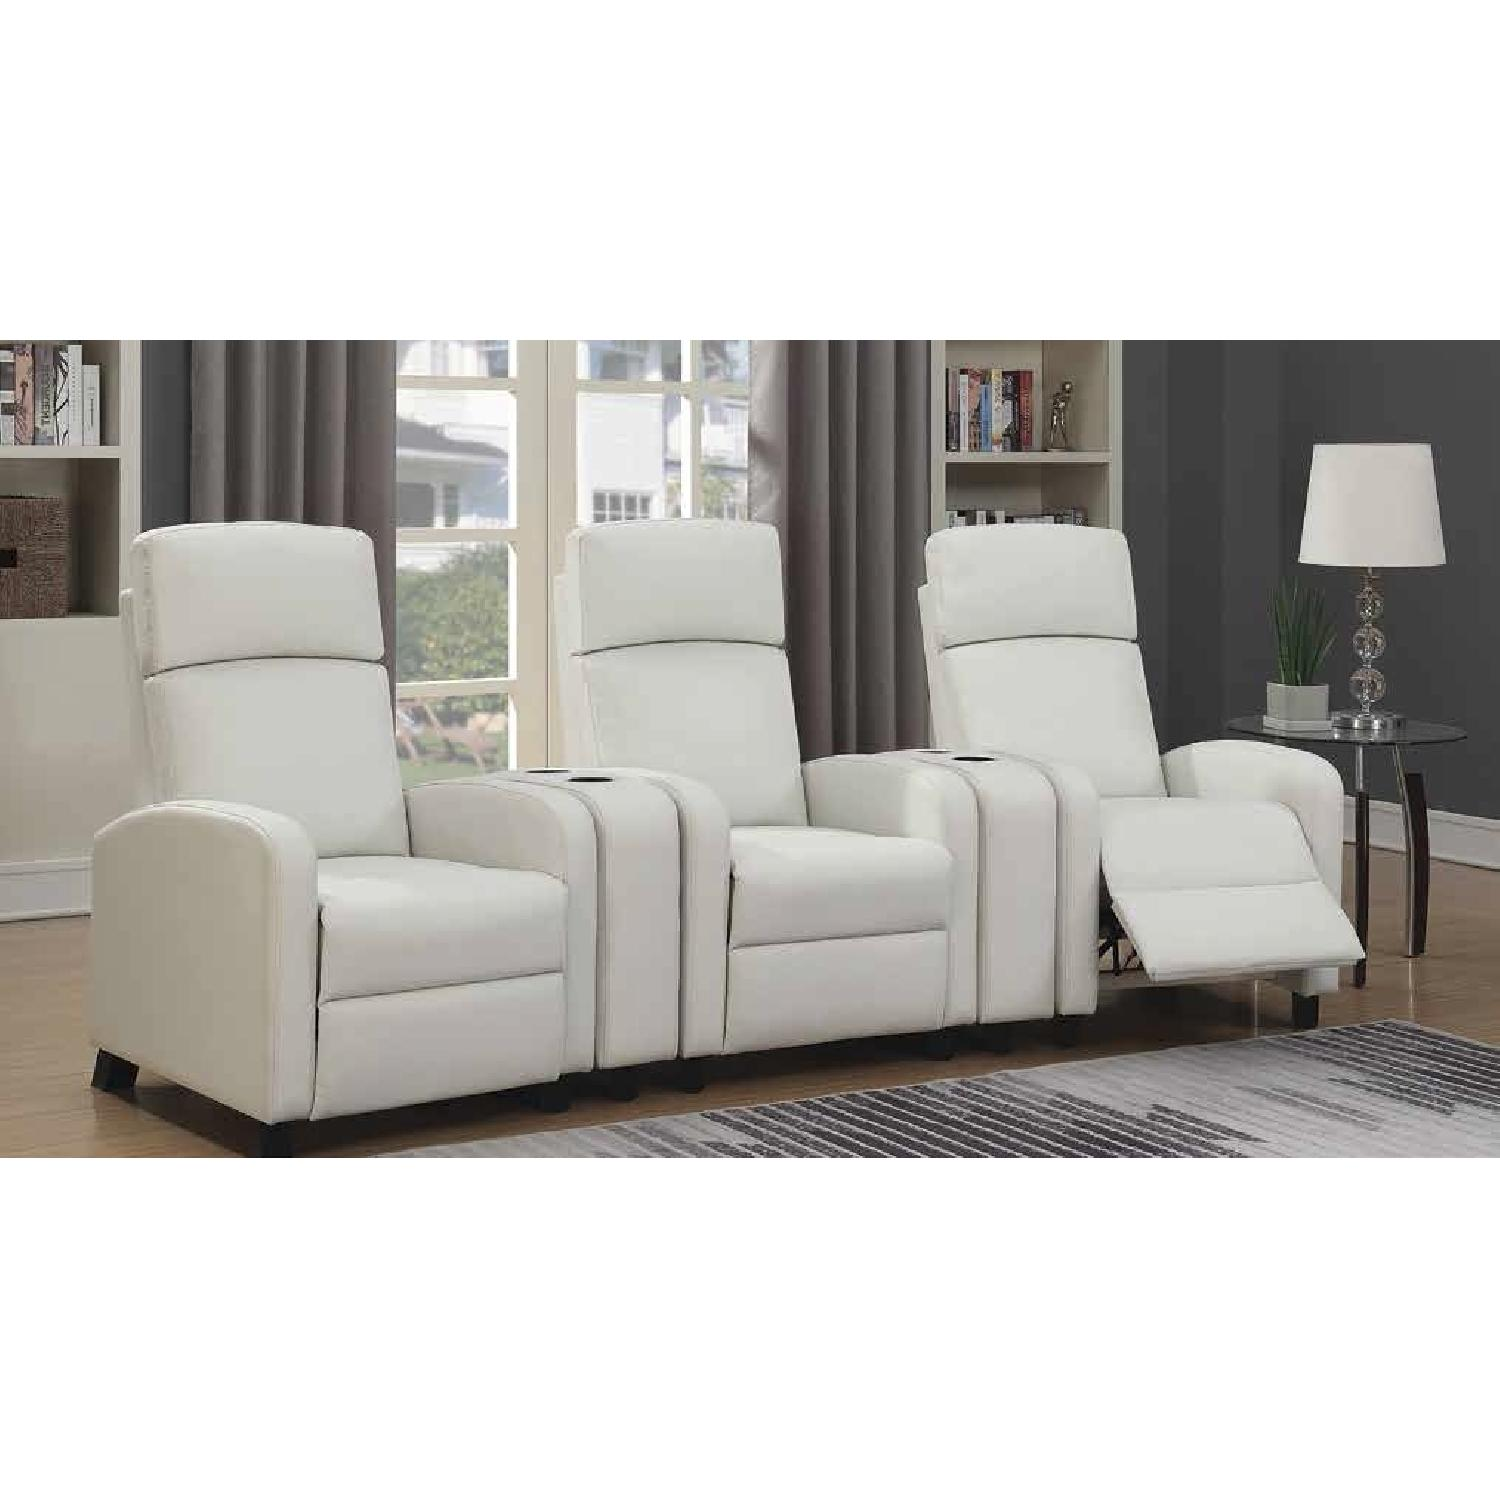 Compact Recliner Chair in White Leatherette-4